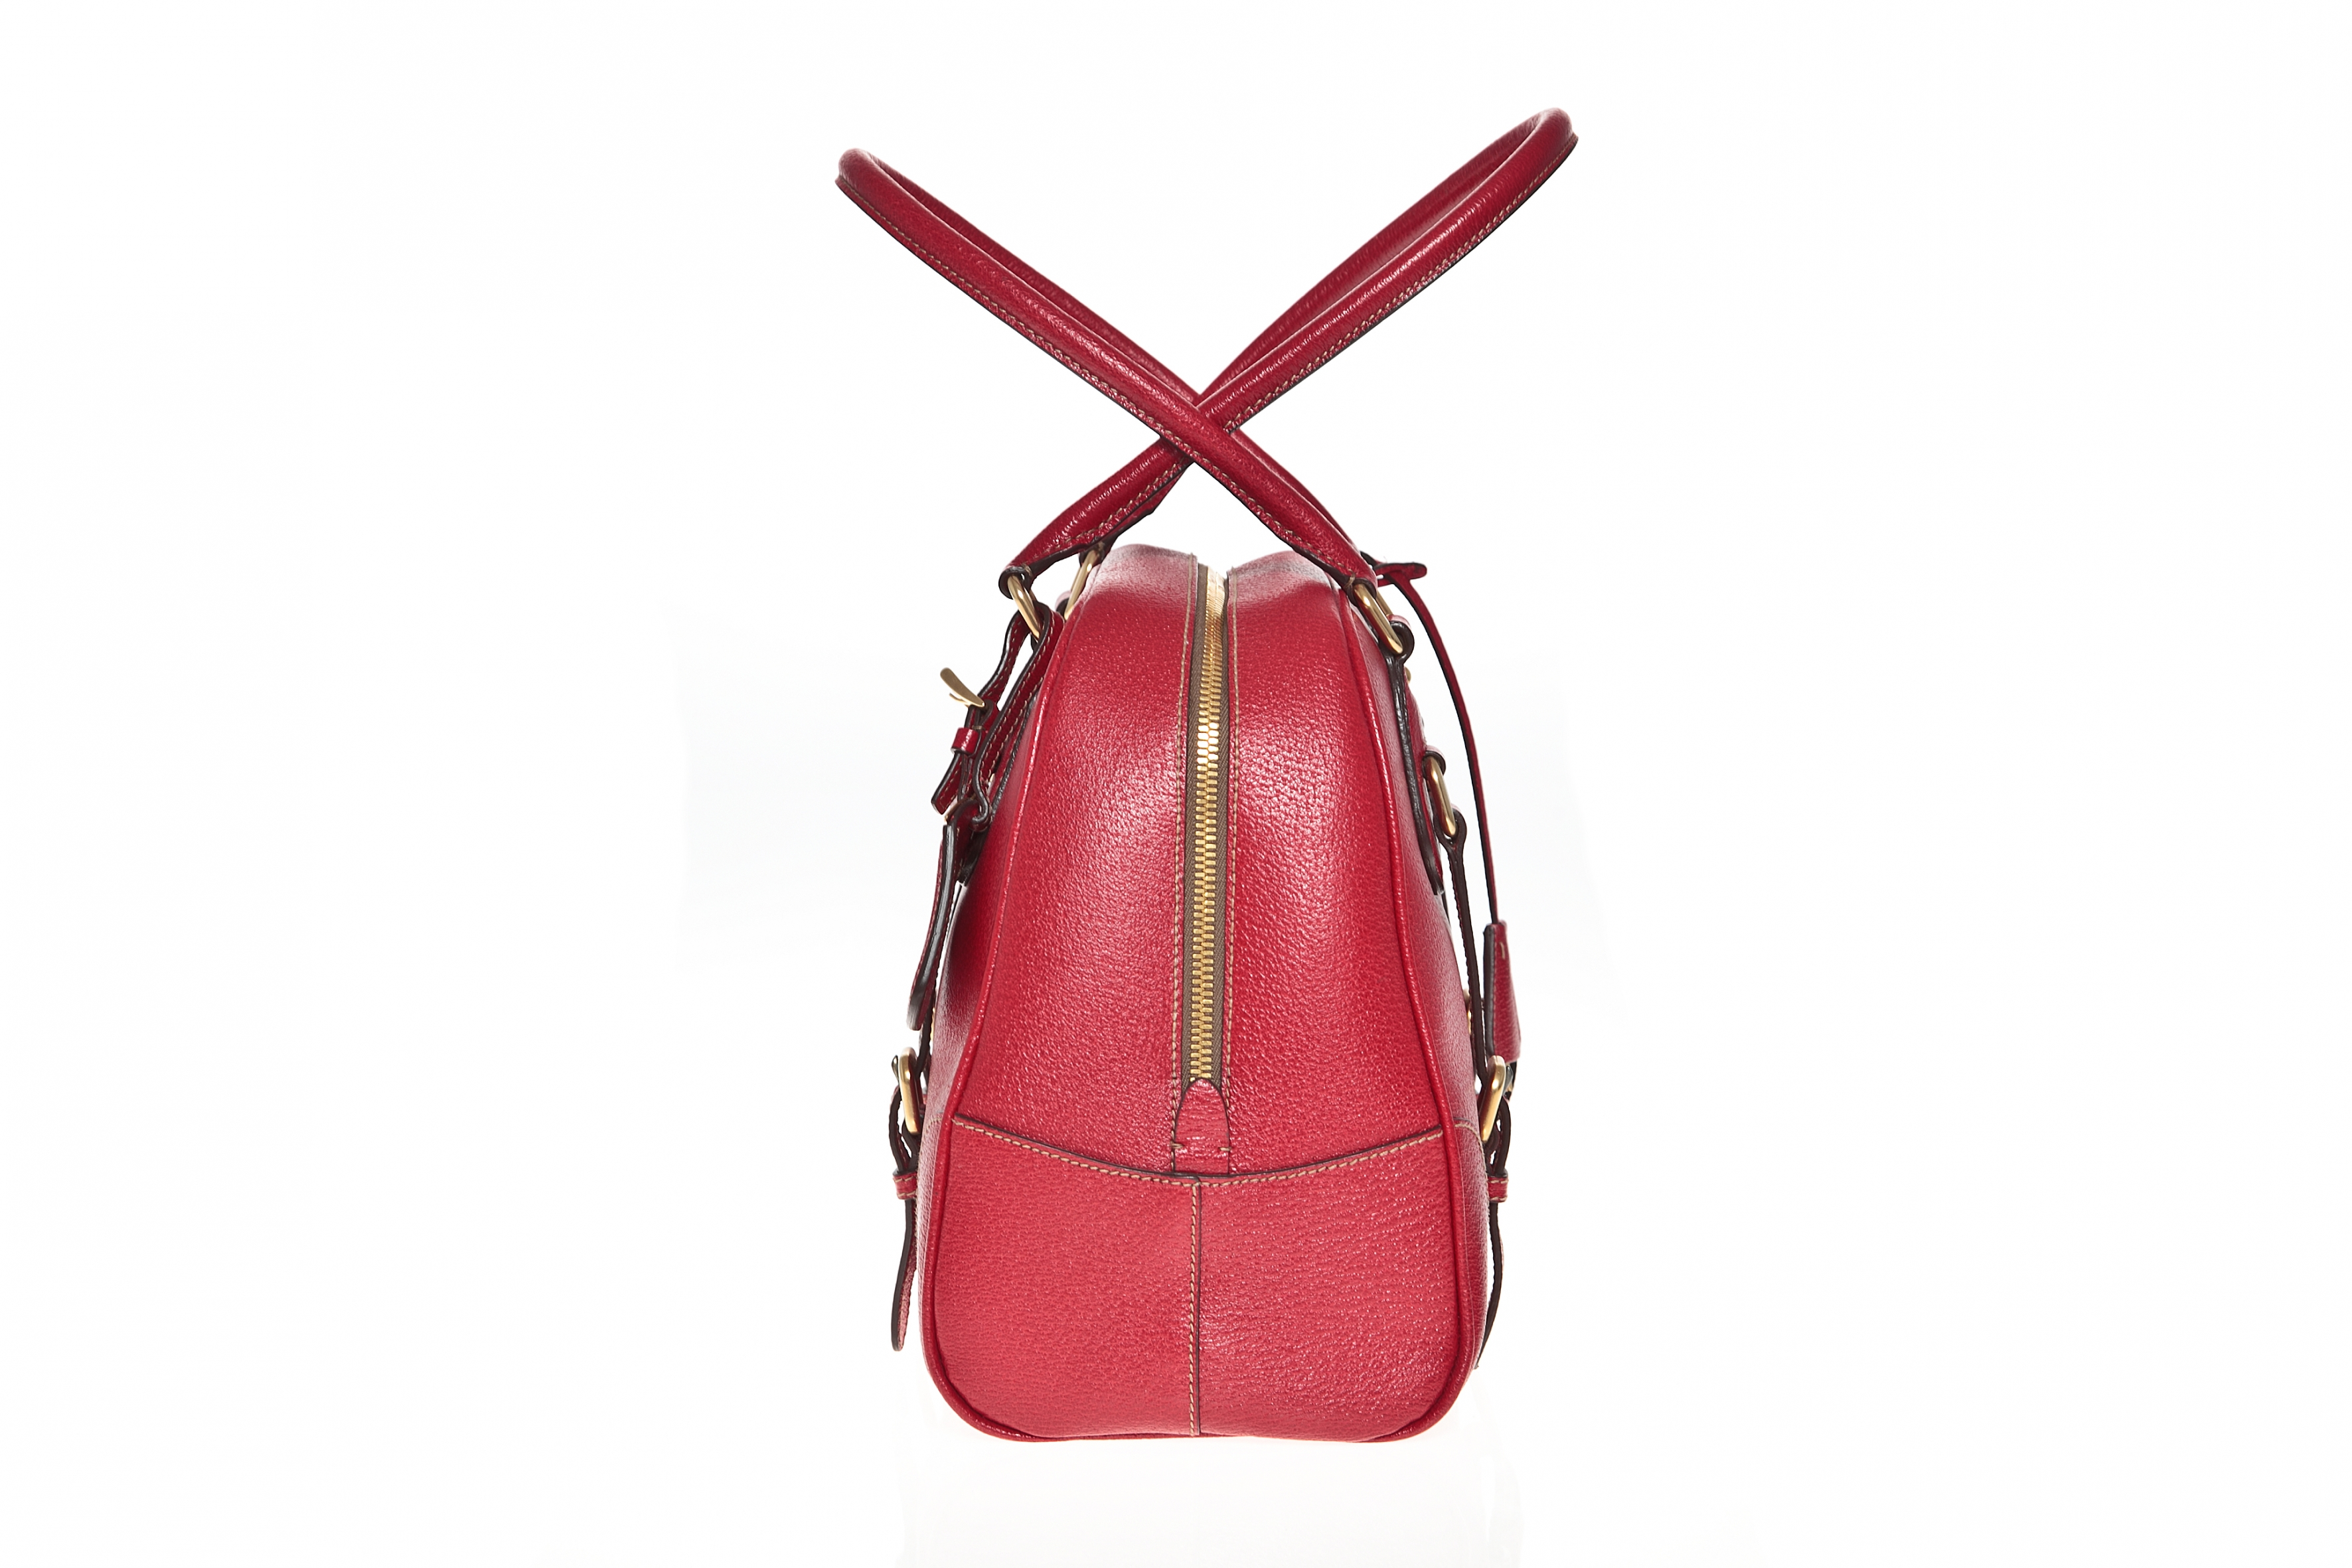 Prada red leather handbag - Vintage Shop in Mykonos